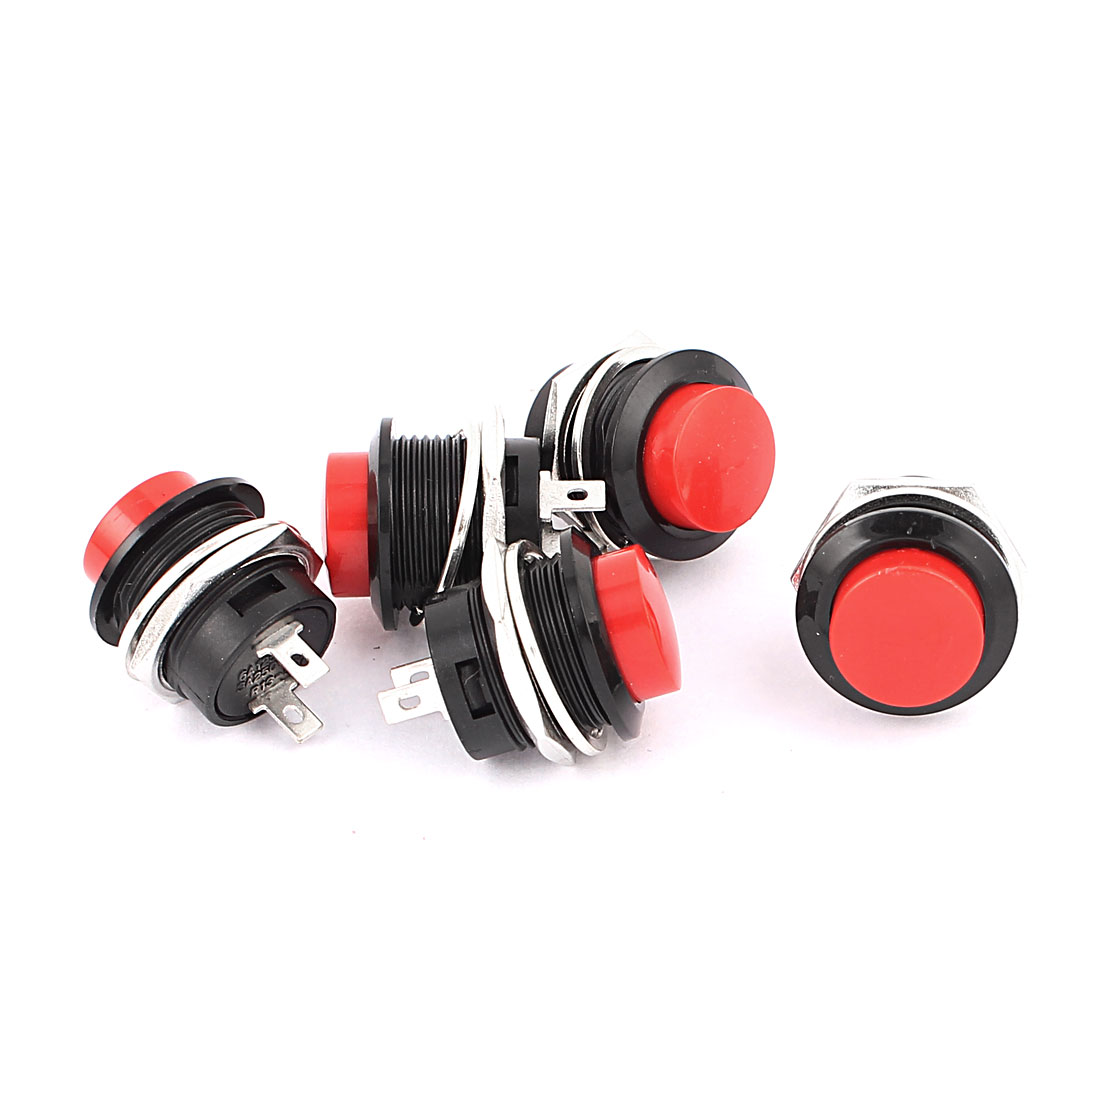 5 Pcs 2 Terminals SPST OFF-(ON) Red Momentary Round Push Button Switch 6A125V.3A250V